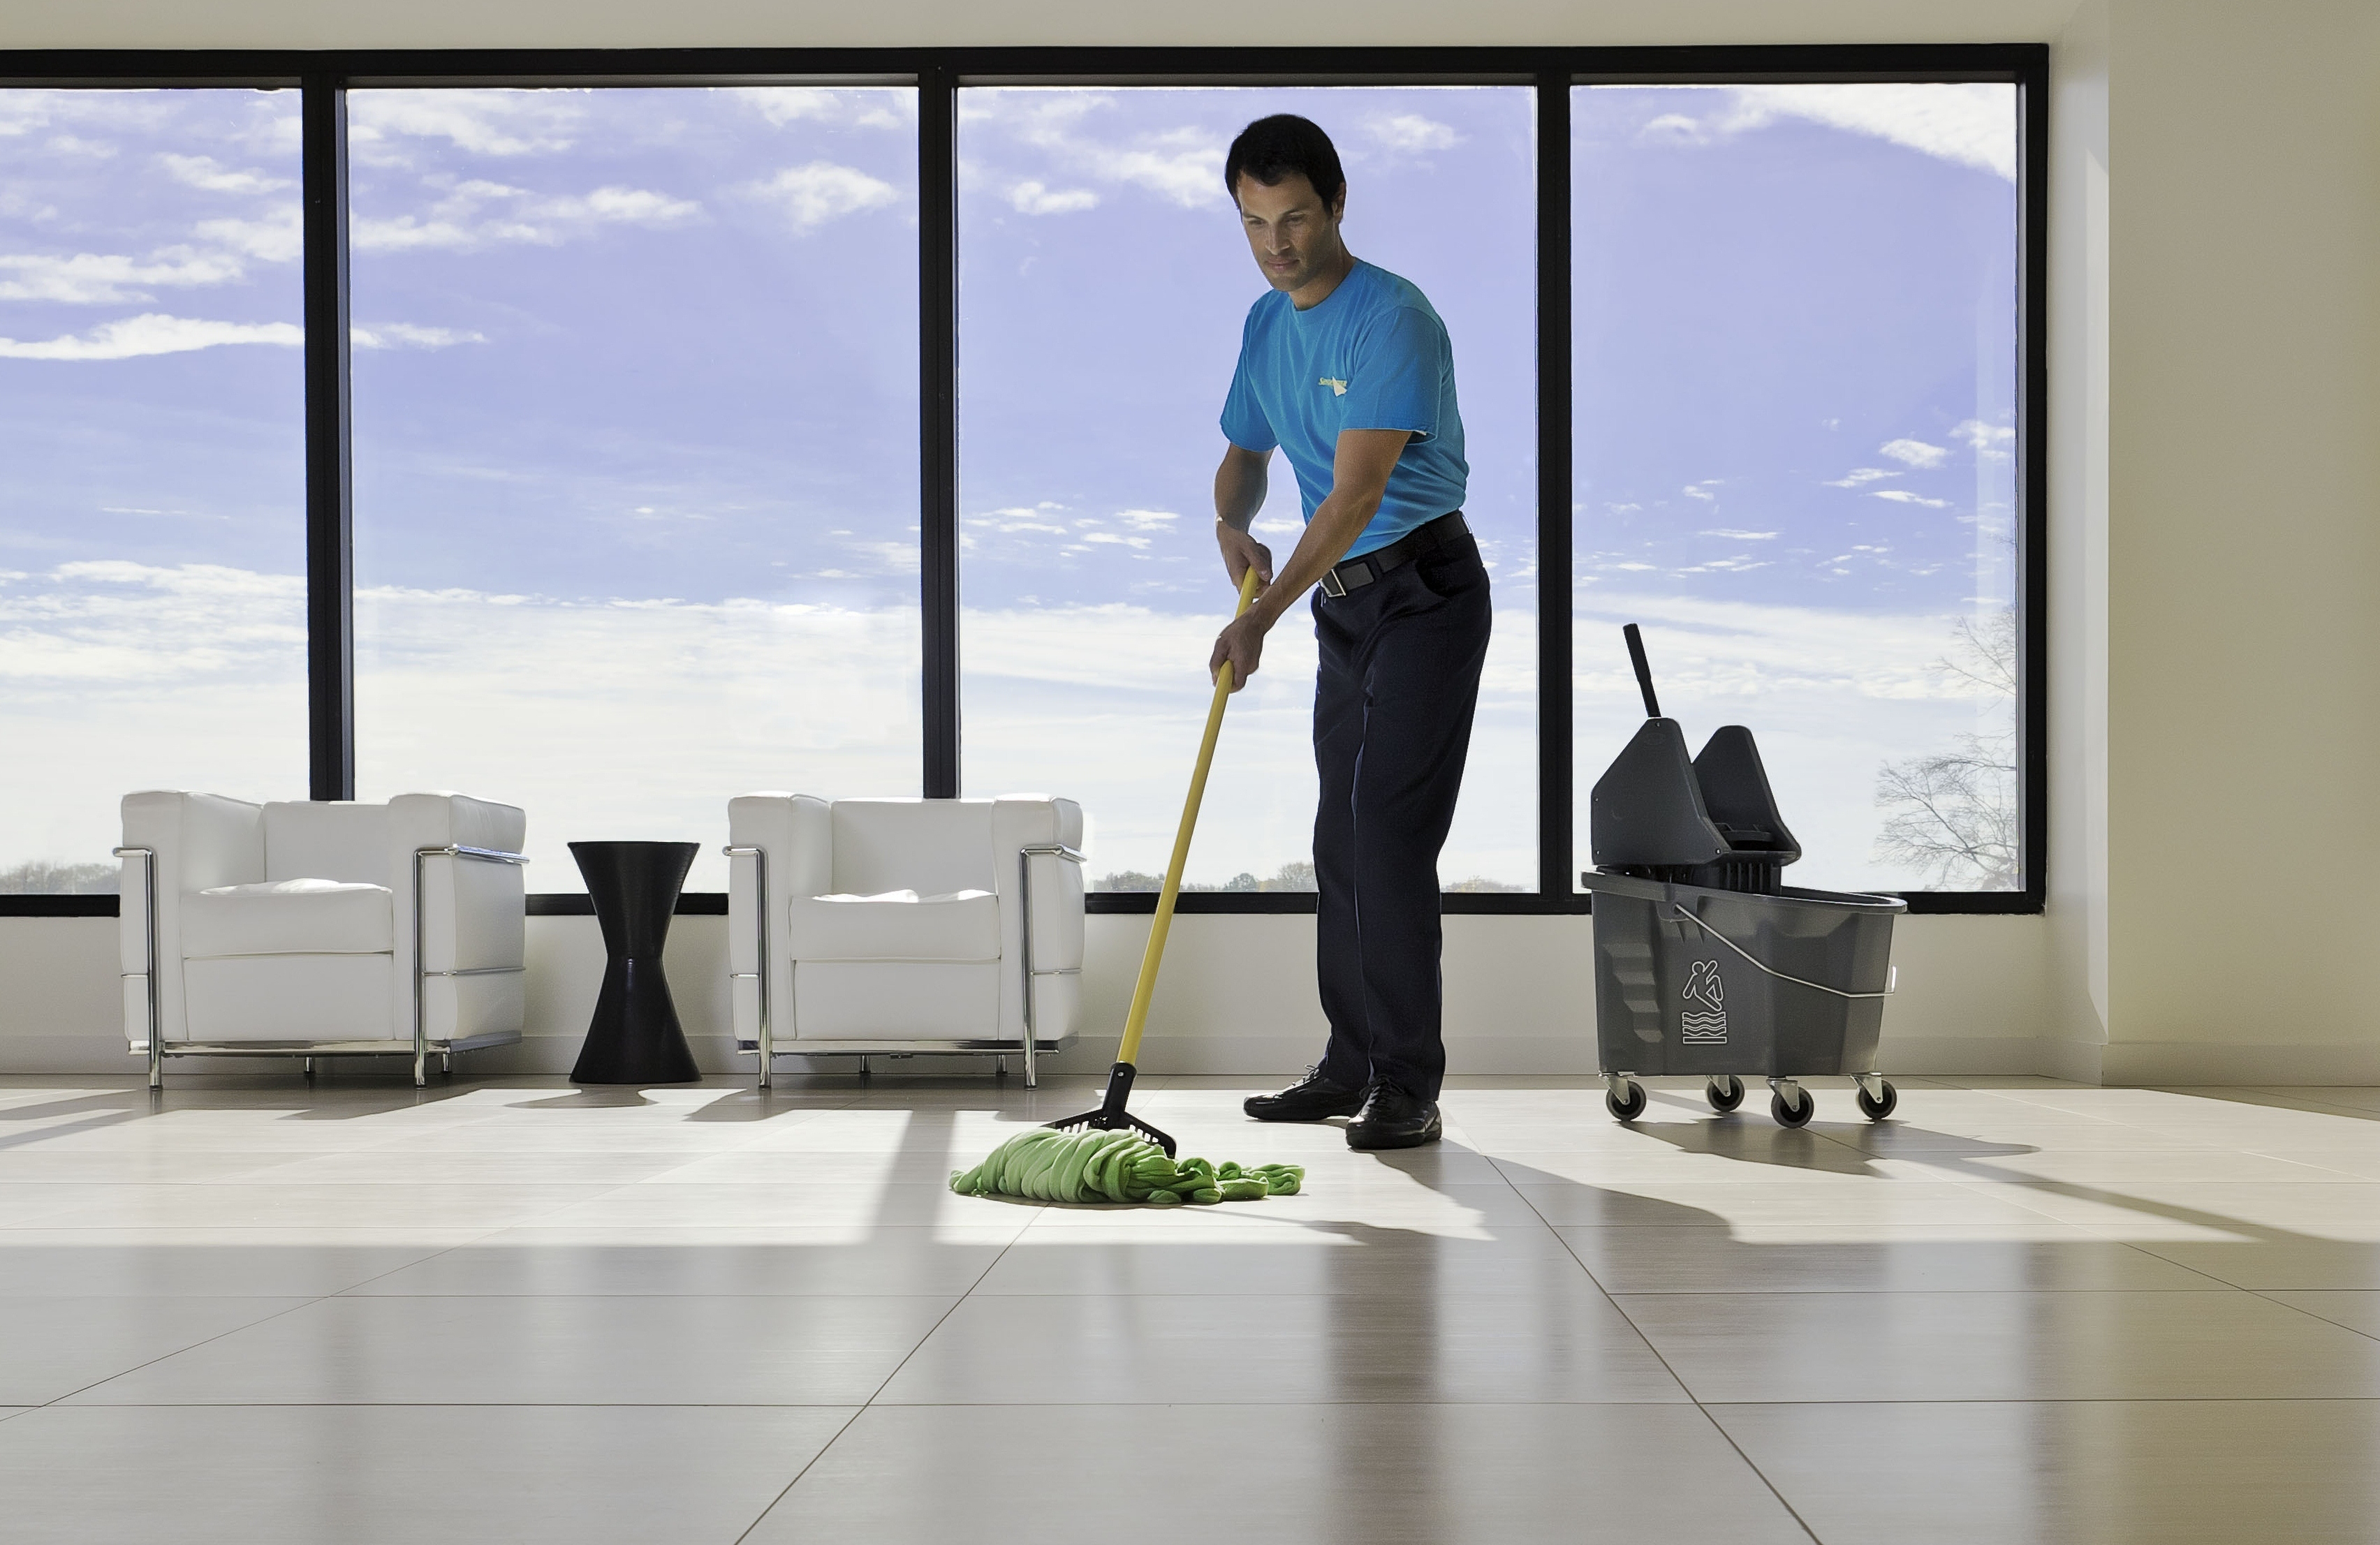 Commercial cleaning equipments